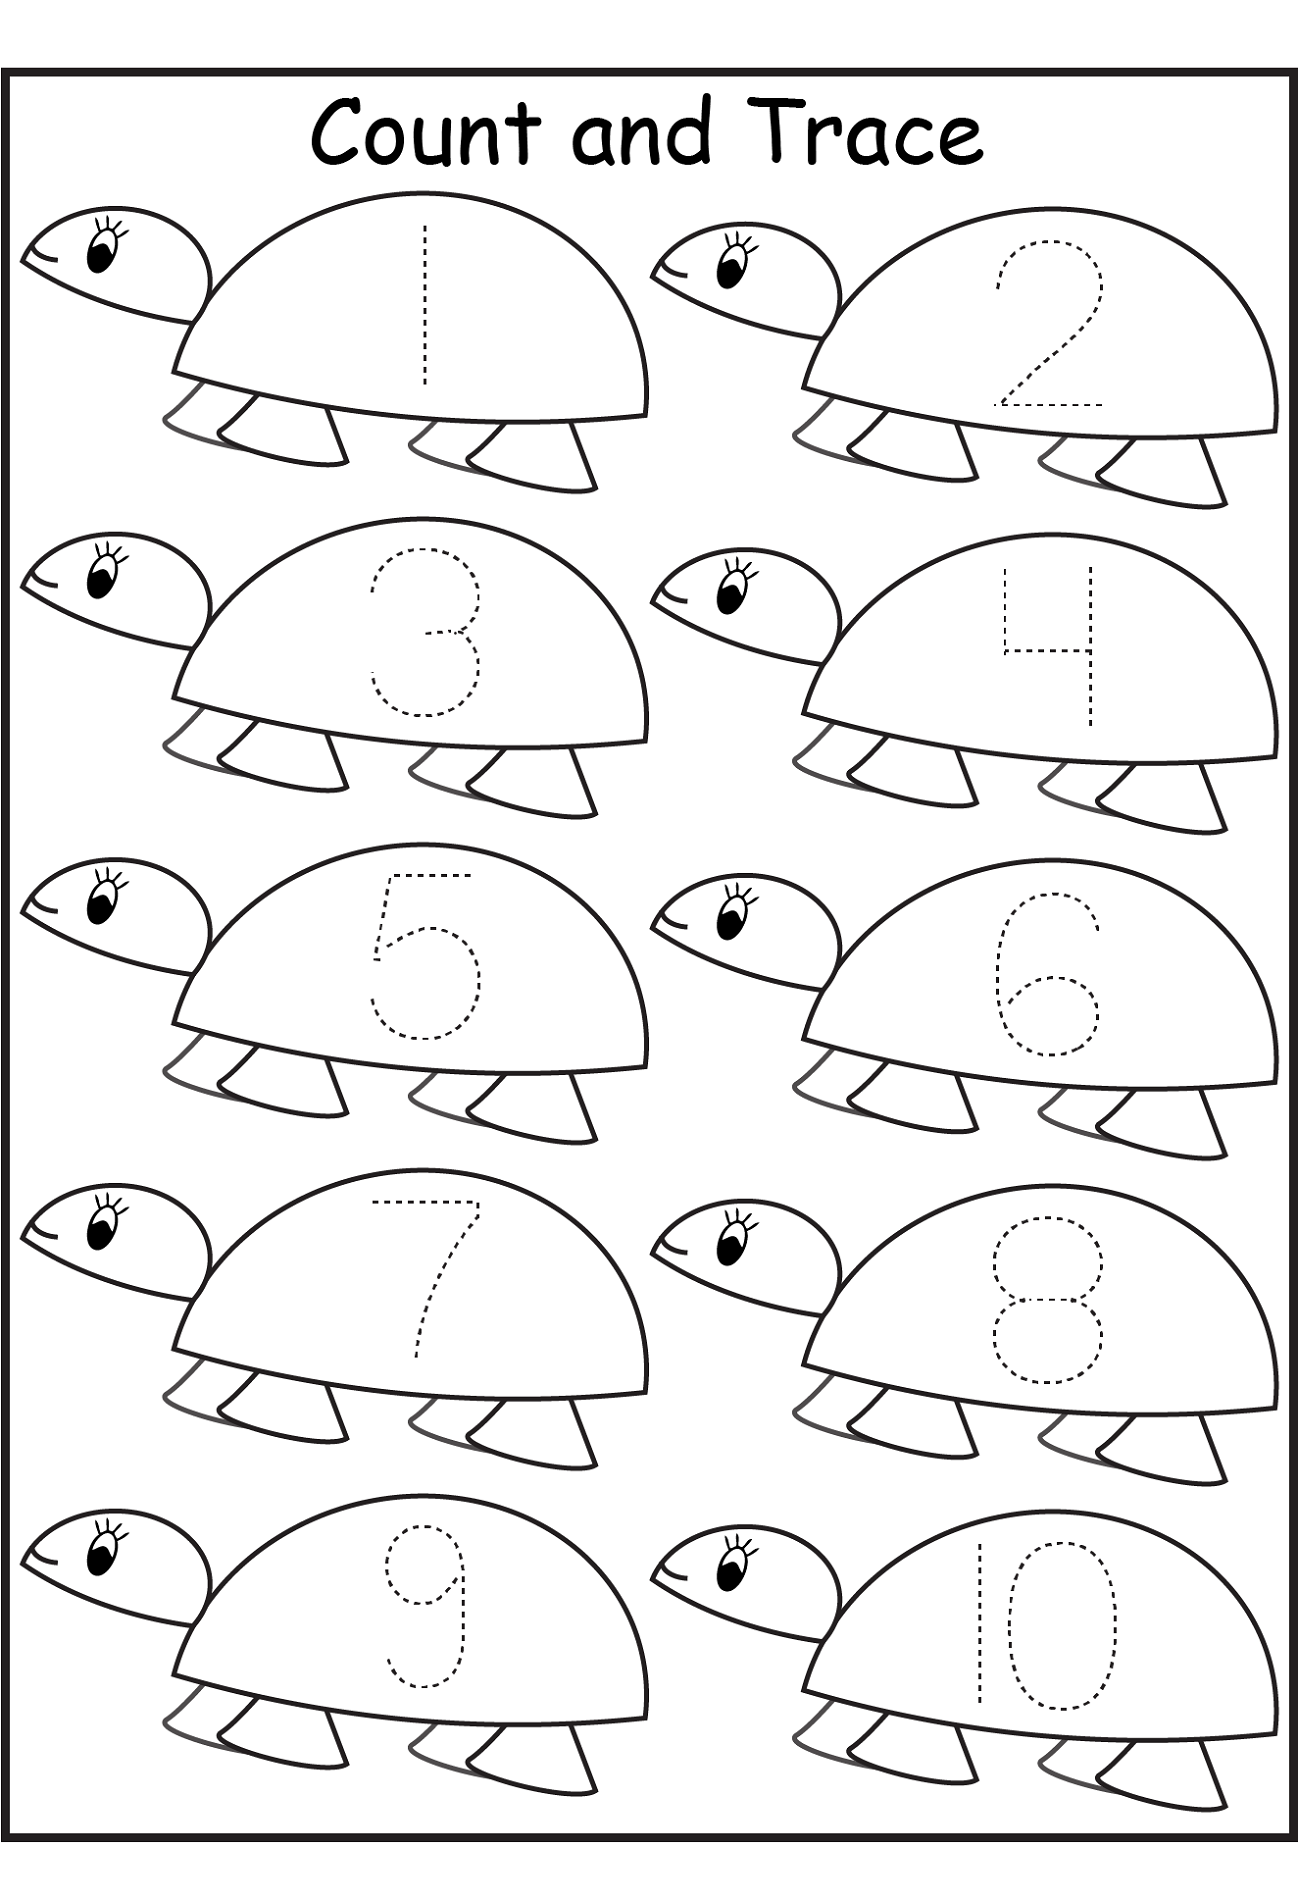 Worksheets Number Tracing Worksheets For Kindergarten pre k worksheets number activity shelter numbers tracing